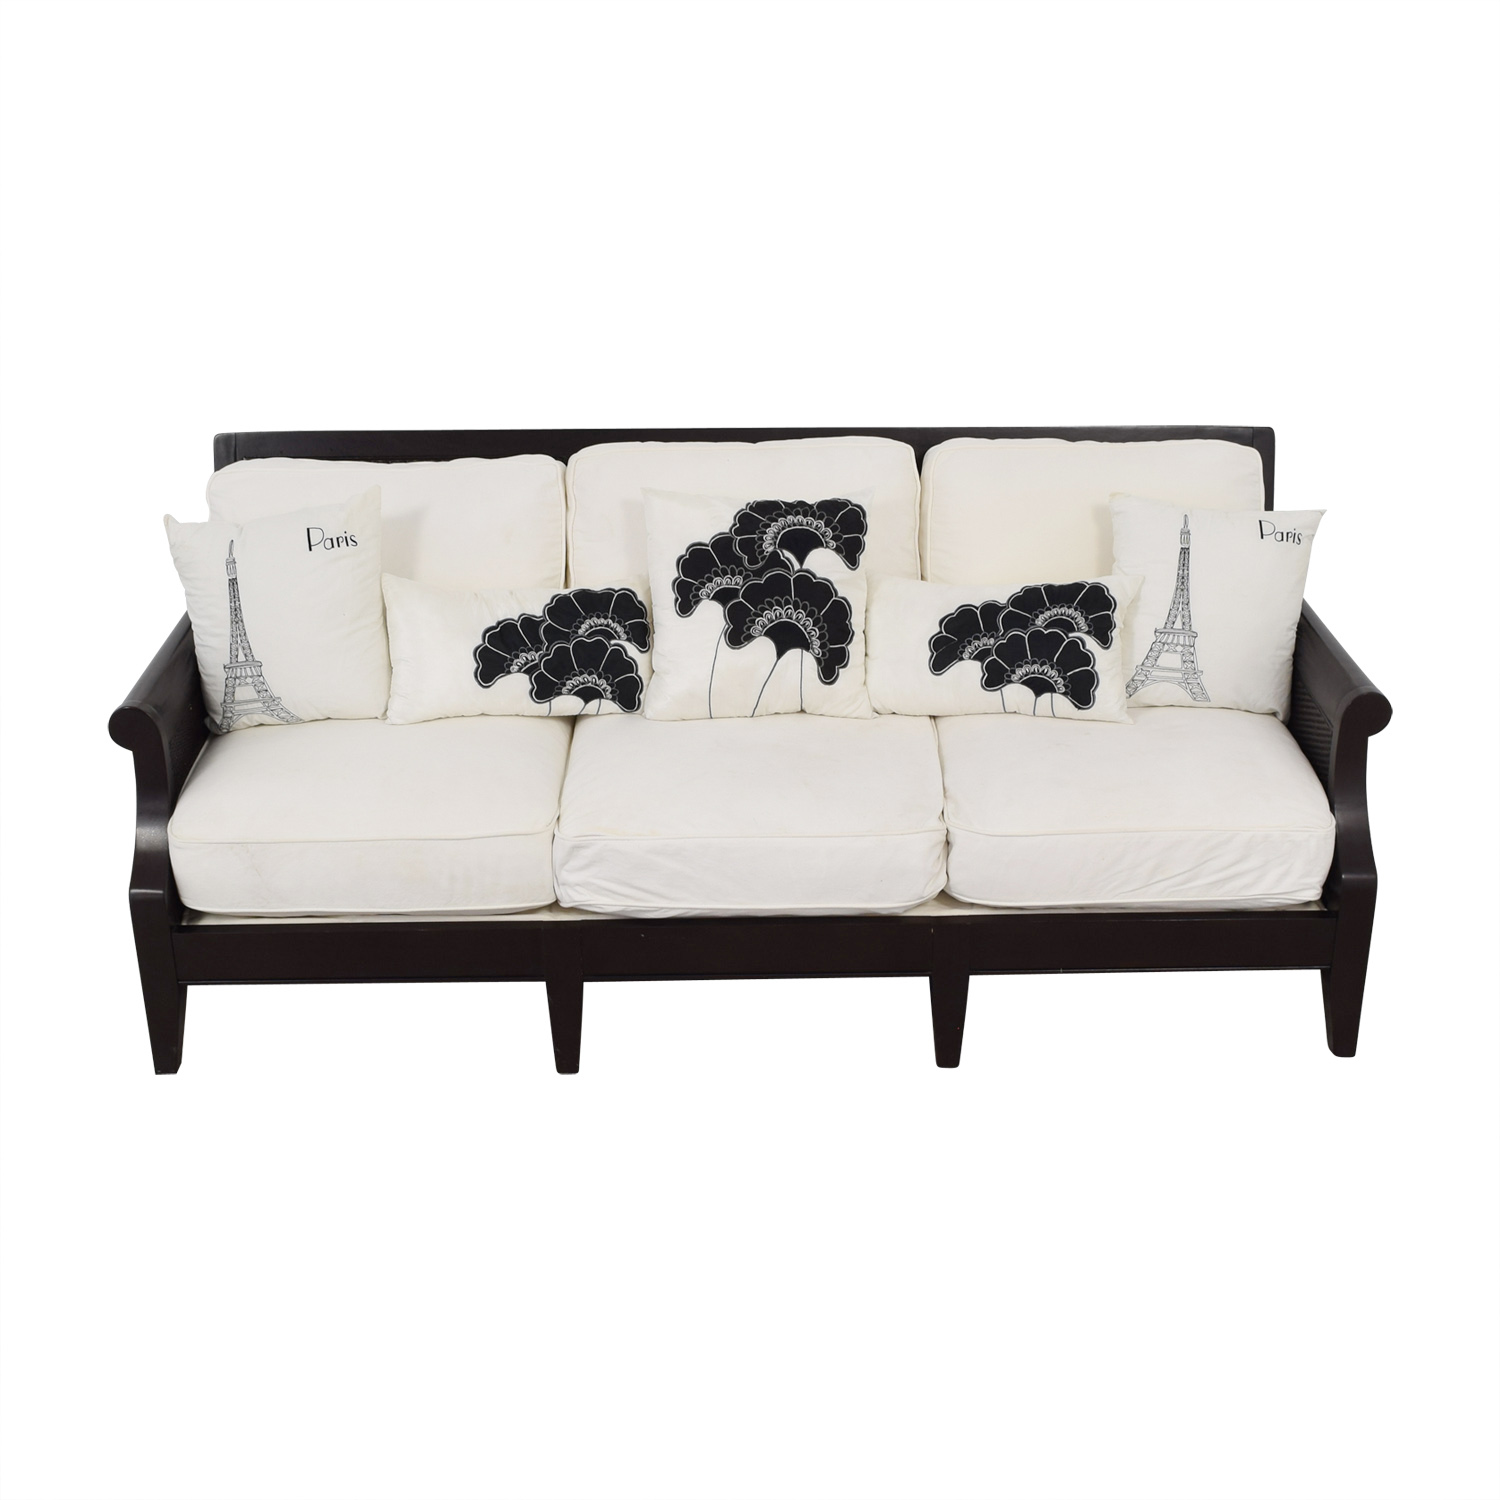 Bloomingdale's Bloomingdale's White Three-Cushion Sofa price